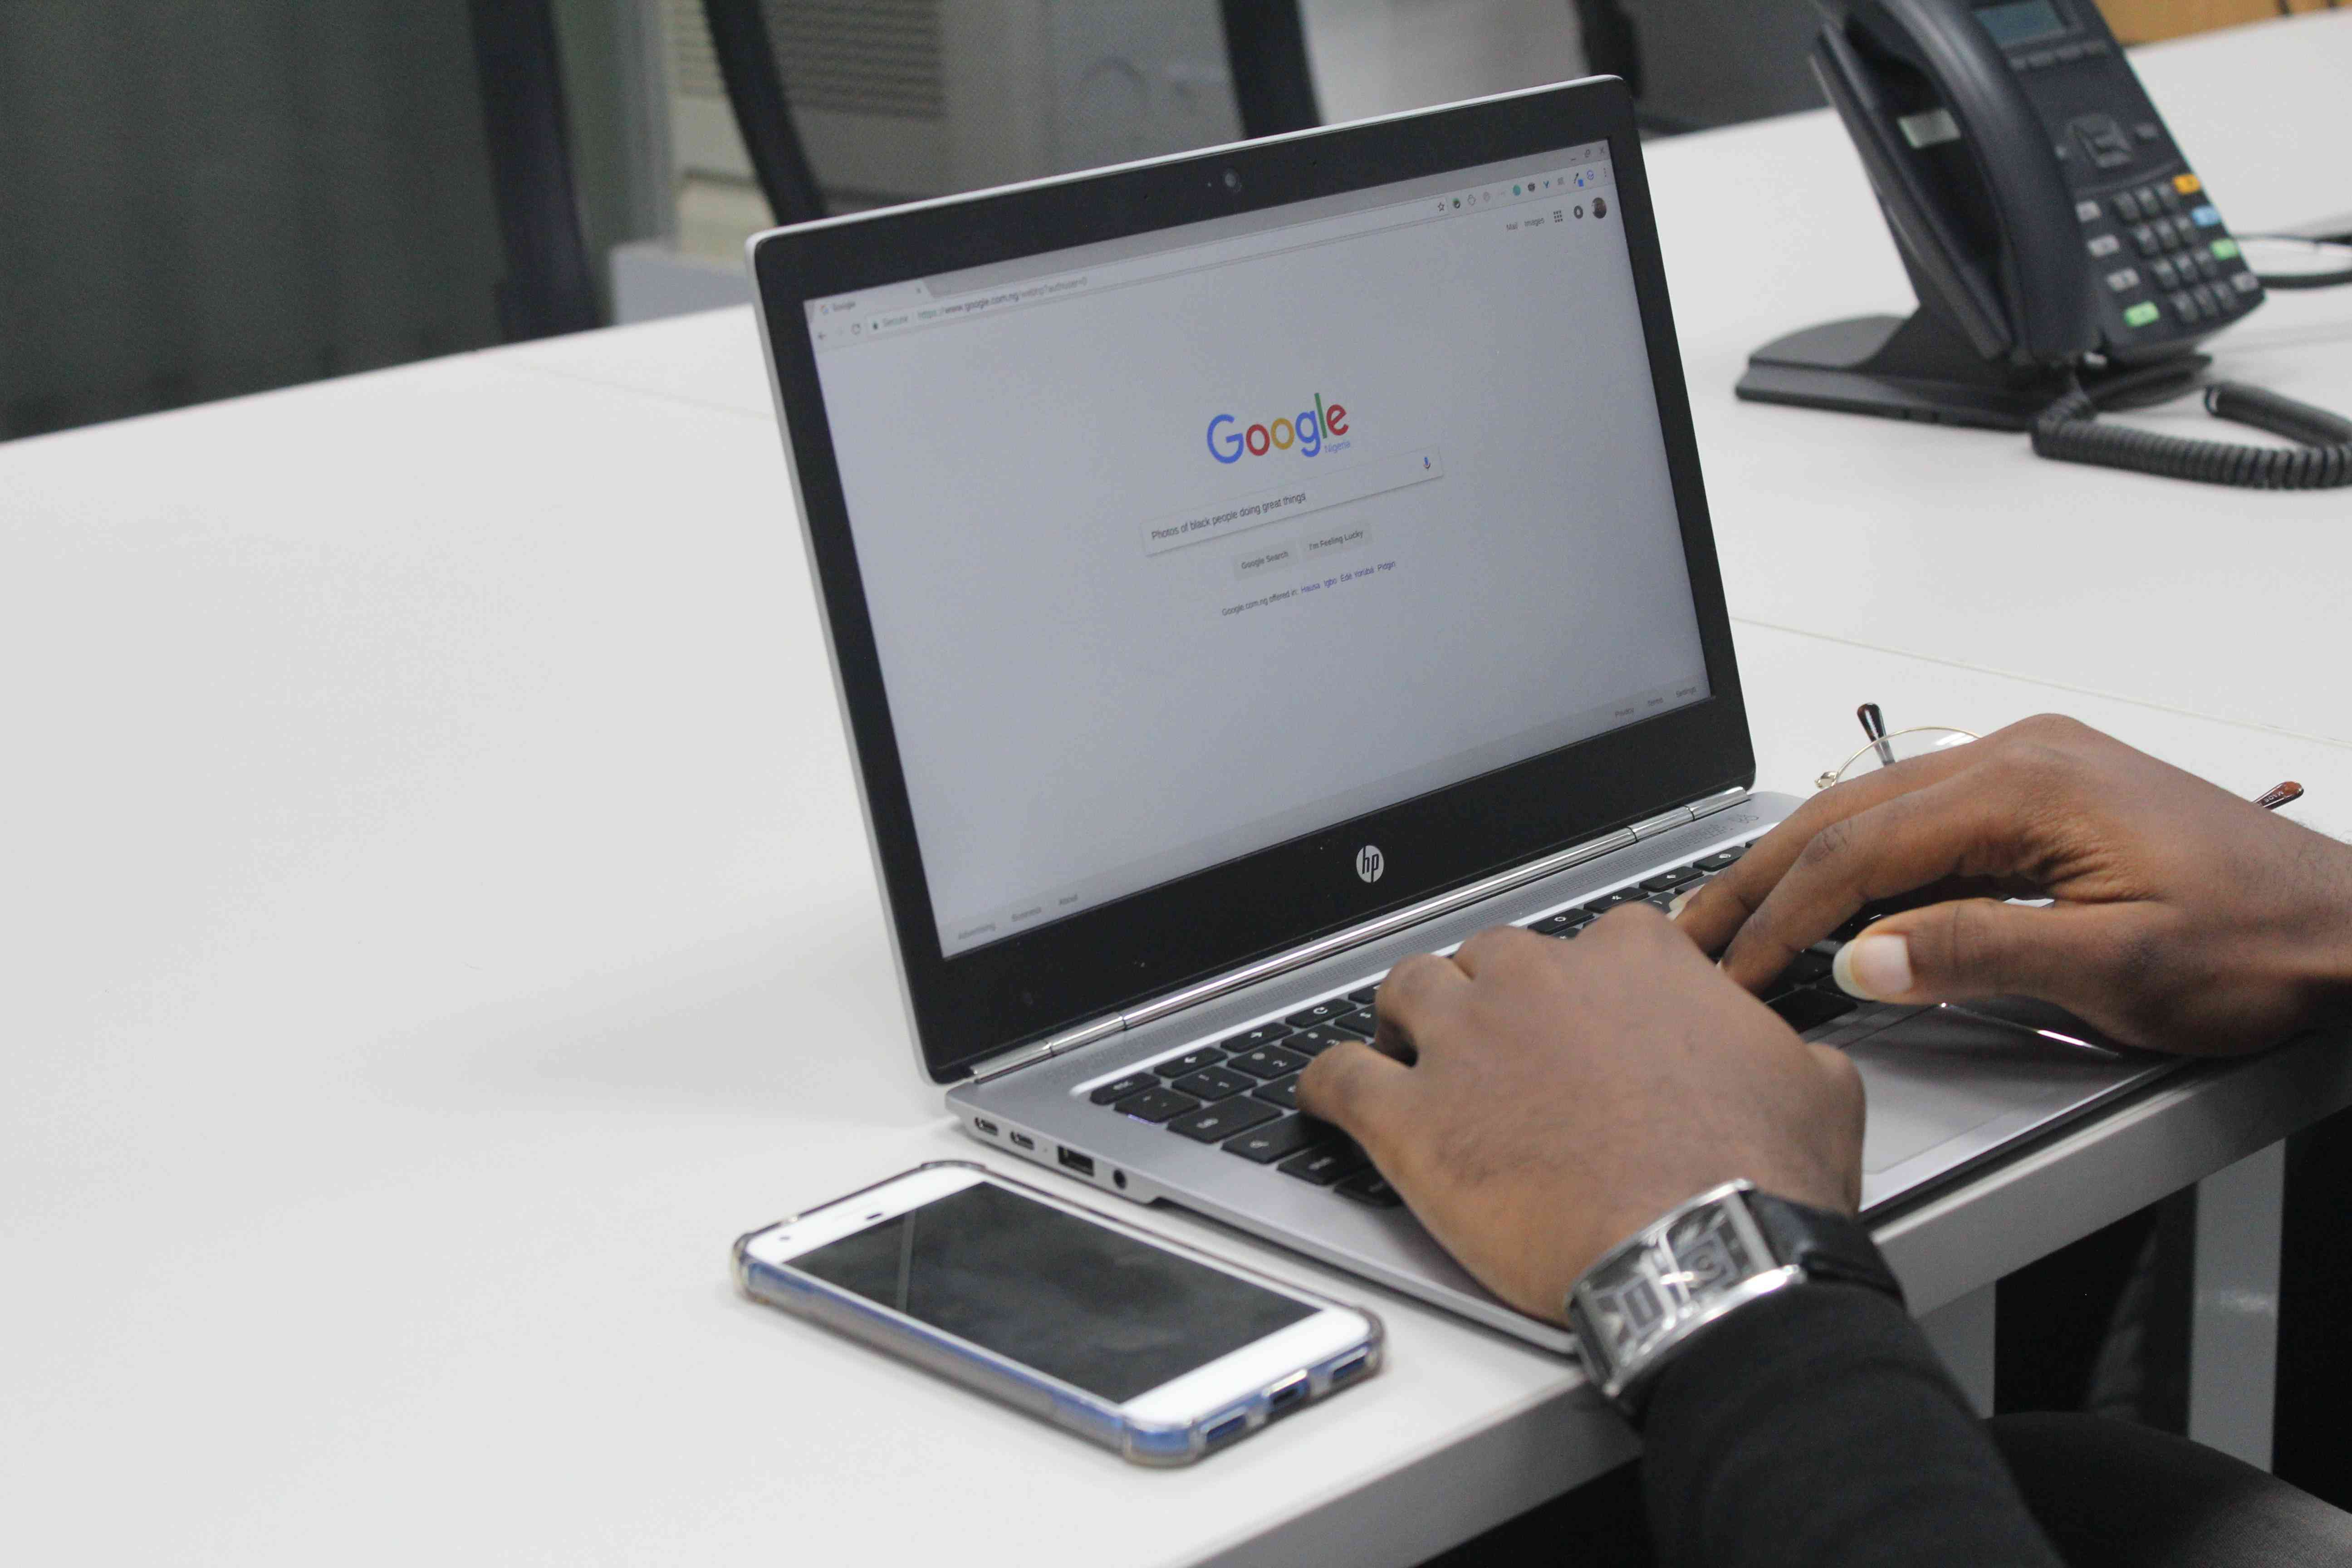 An image of the Google search page on a laptop.